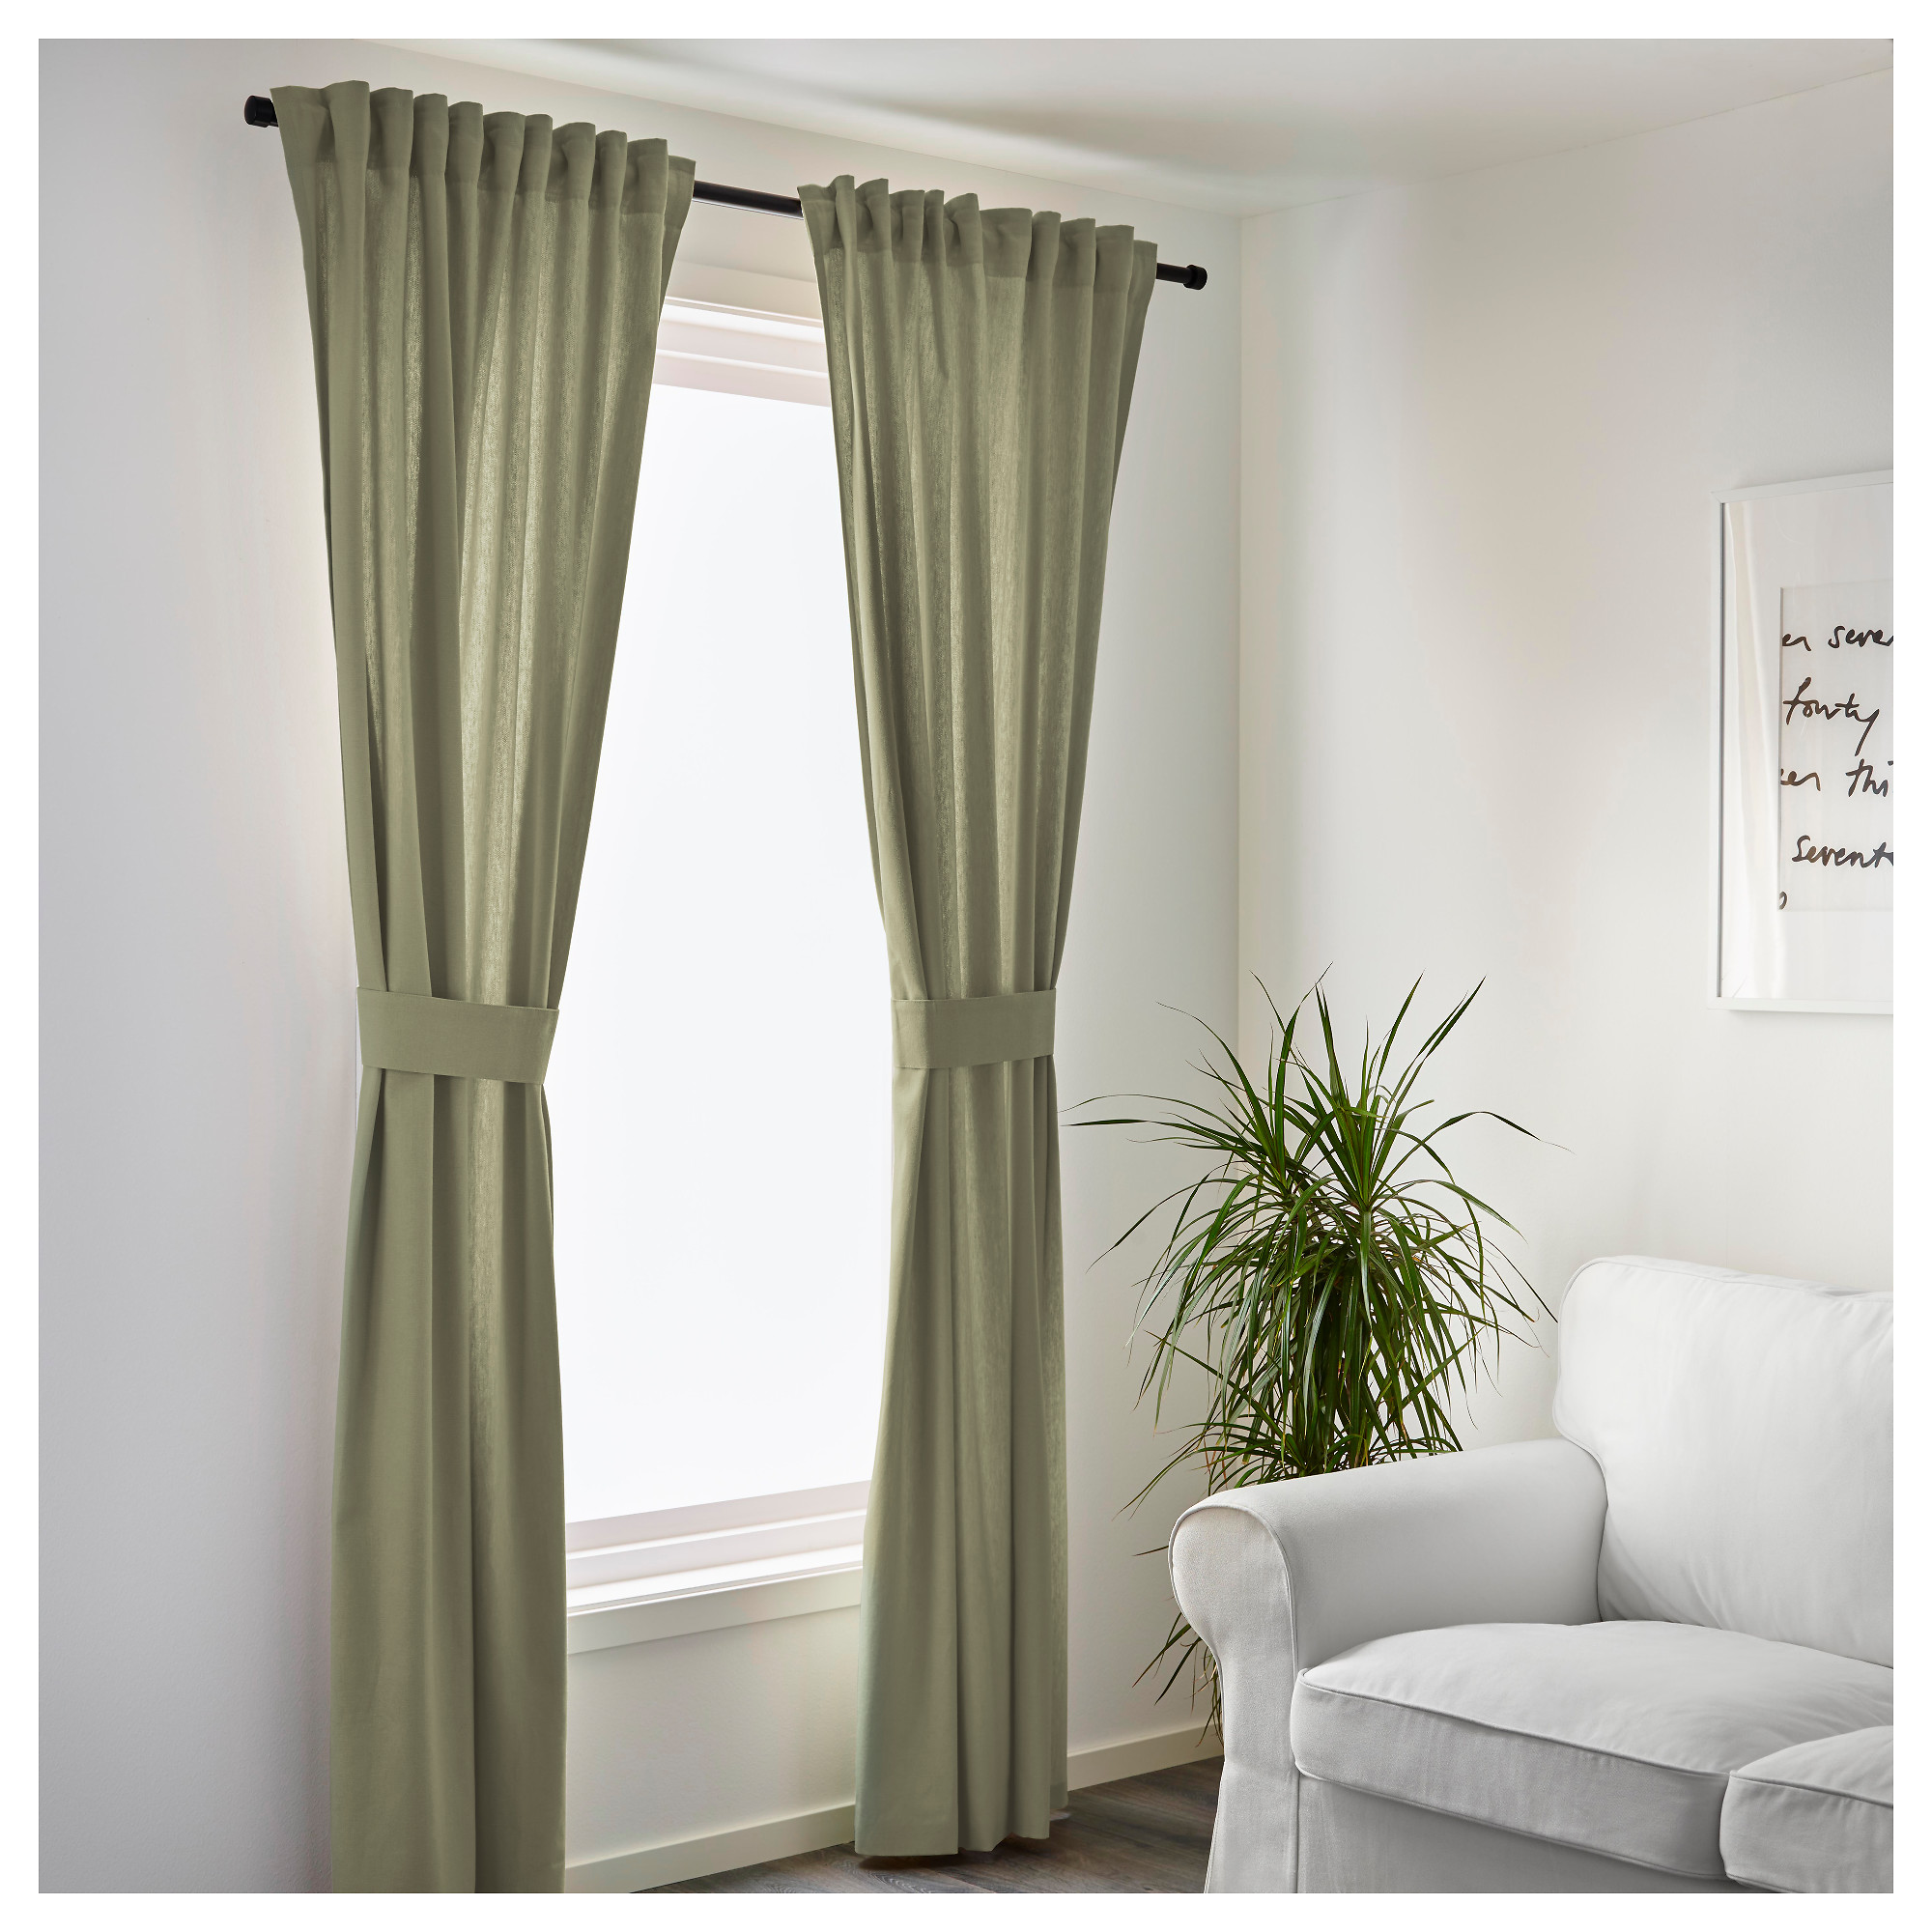 Ikea Living Room Curtains Ingert Curtains With Tie Backs 1 Pair Ikea